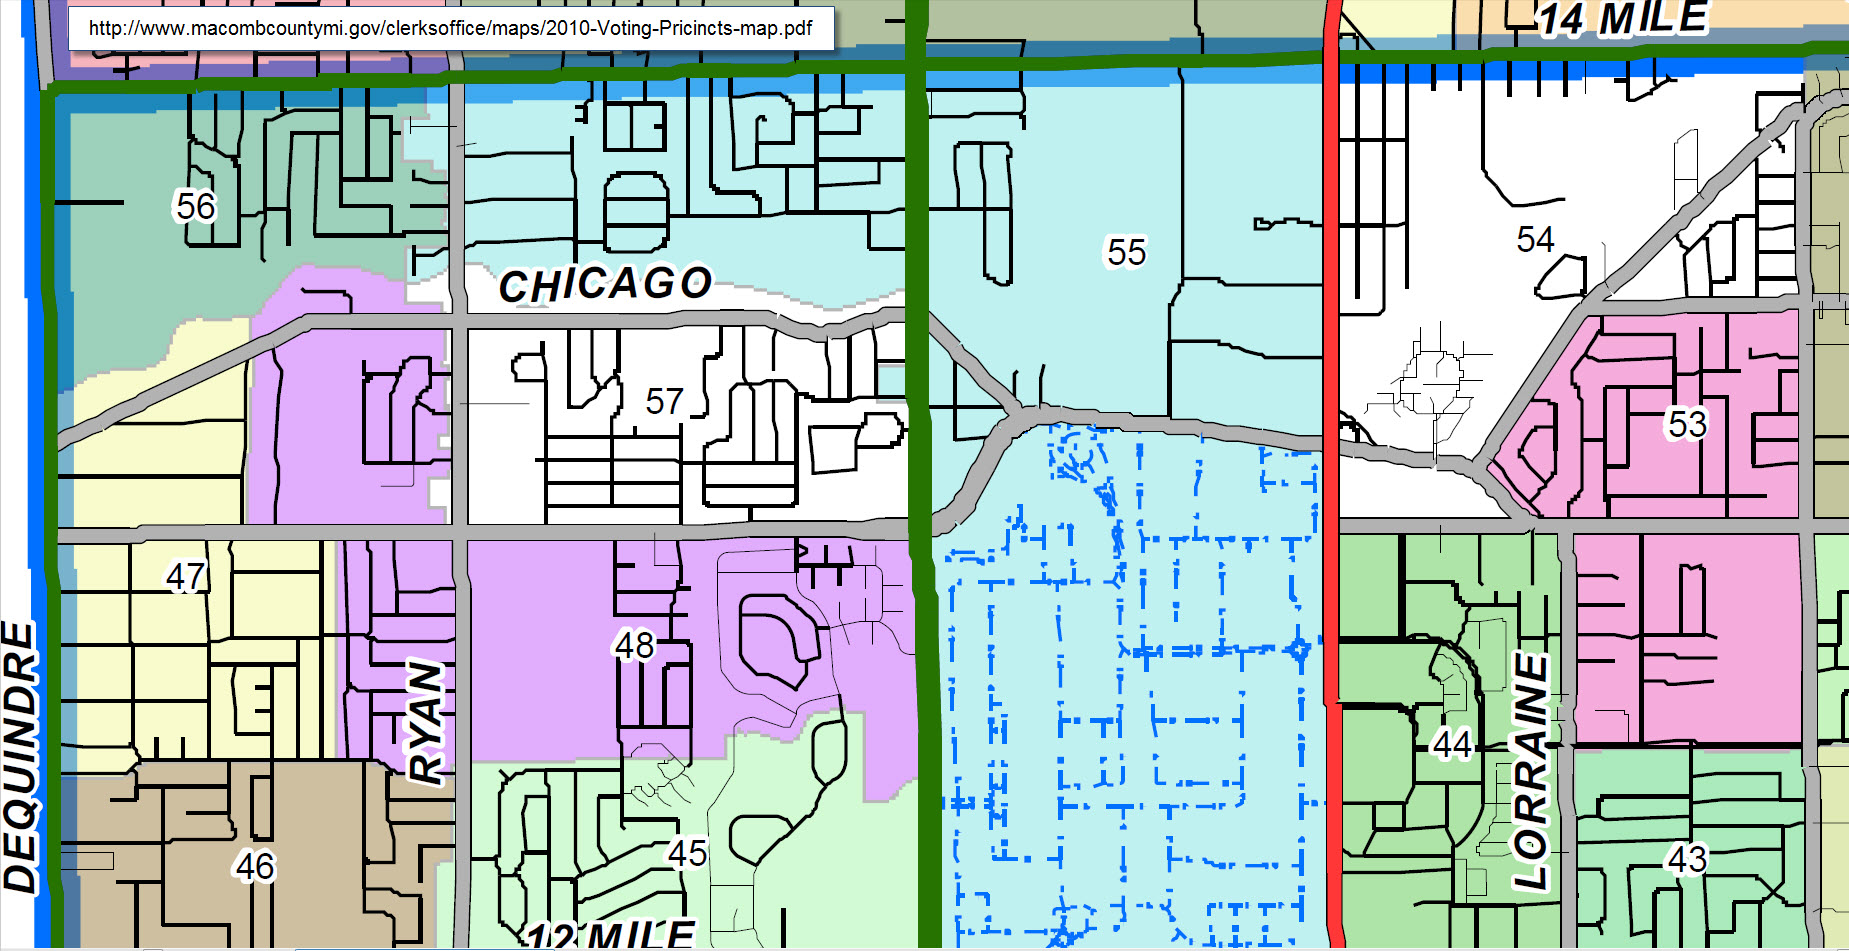 City Of Warren Precincts And Districts Maps Red Run